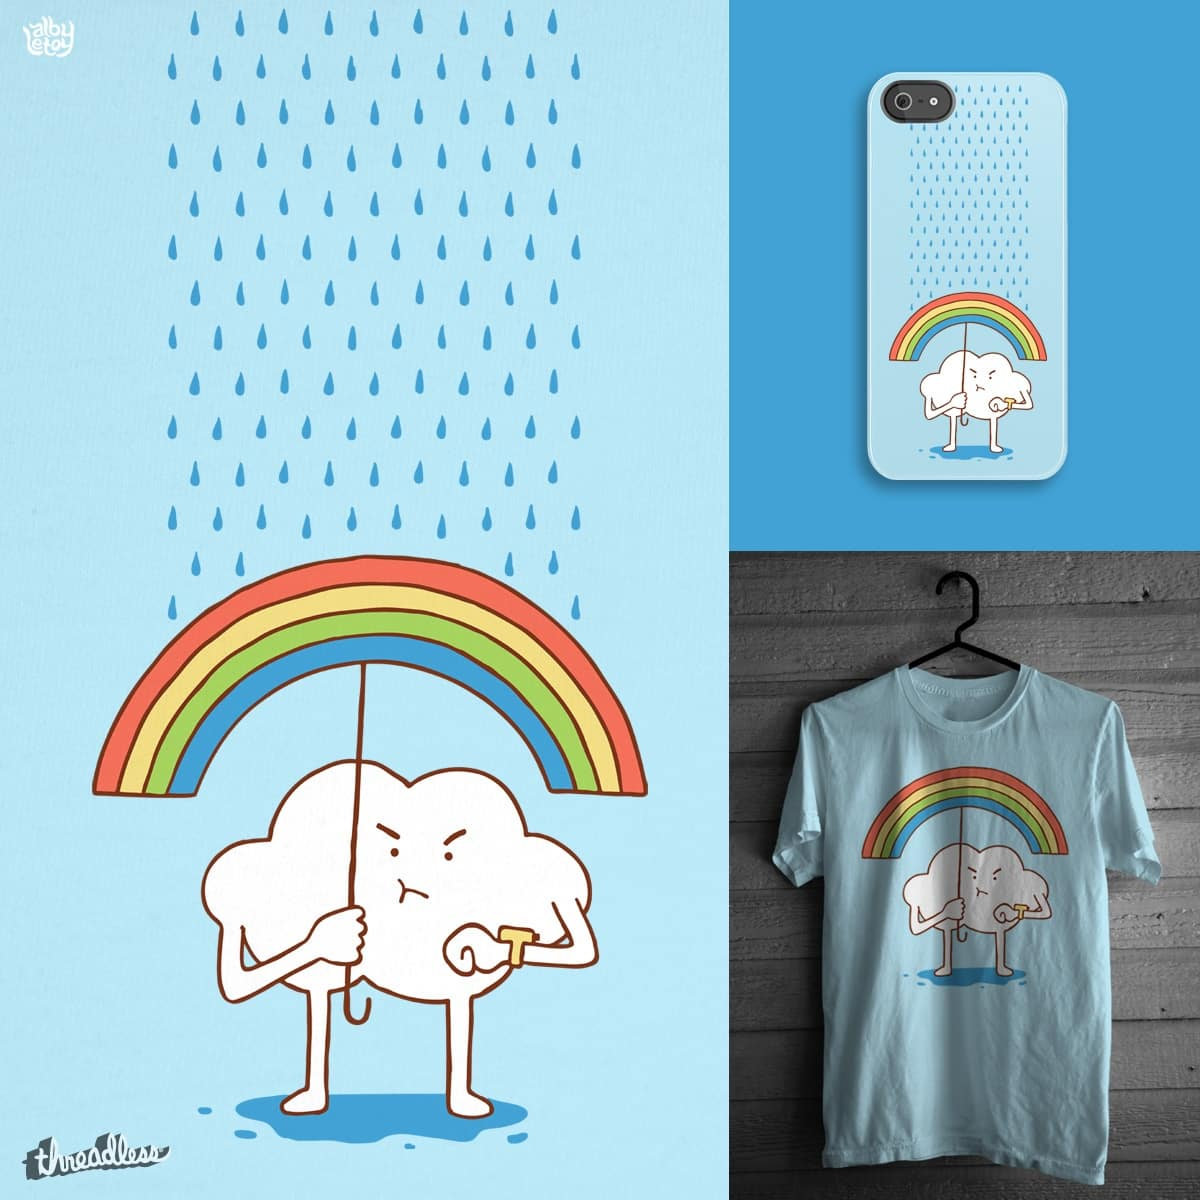 Waiting for the sun by albyletoy on Threadless